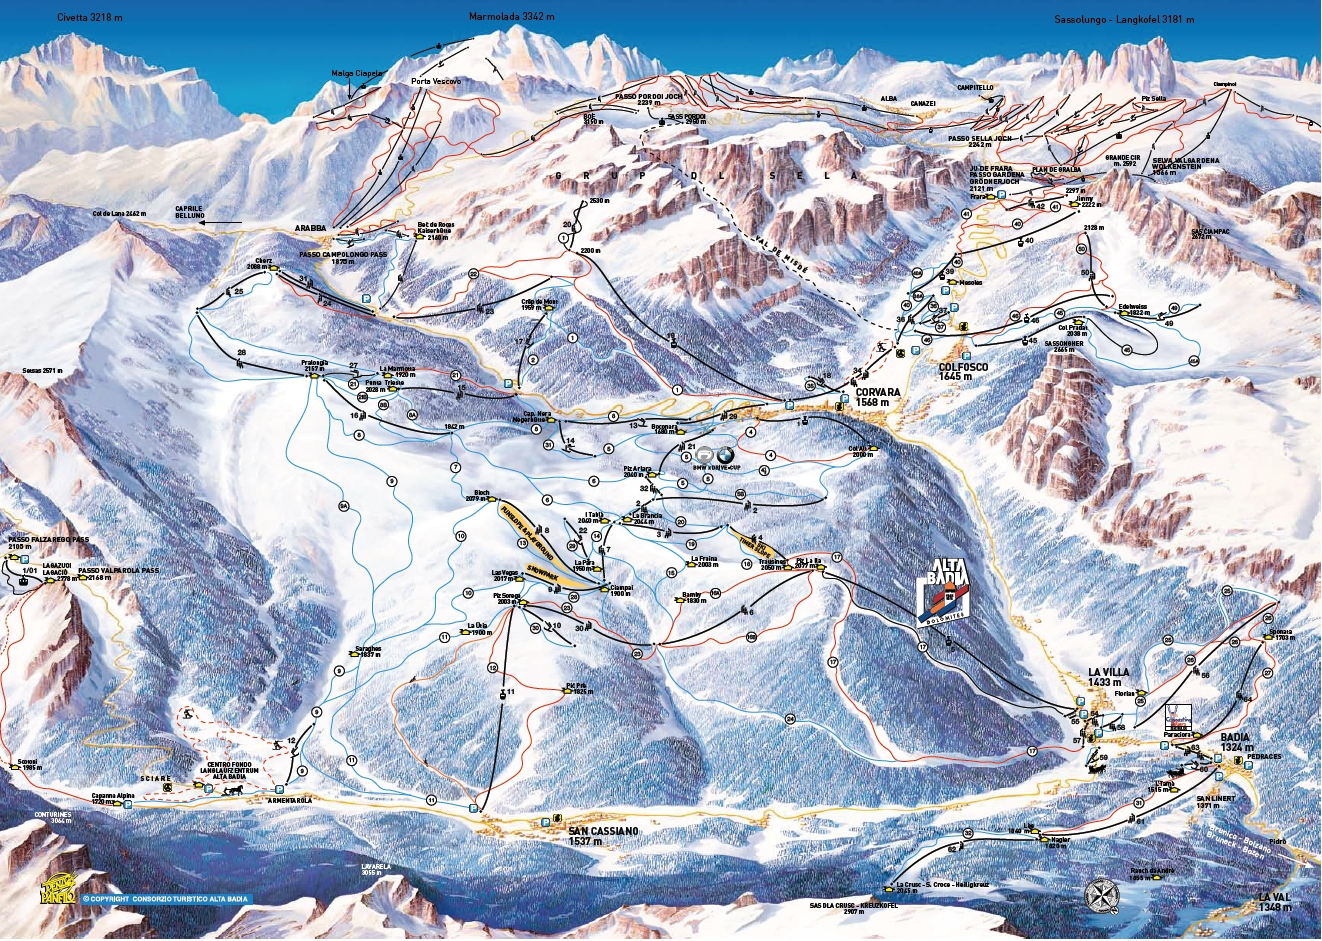 San Cassiano (Alta Badia) Piste / Trail Map